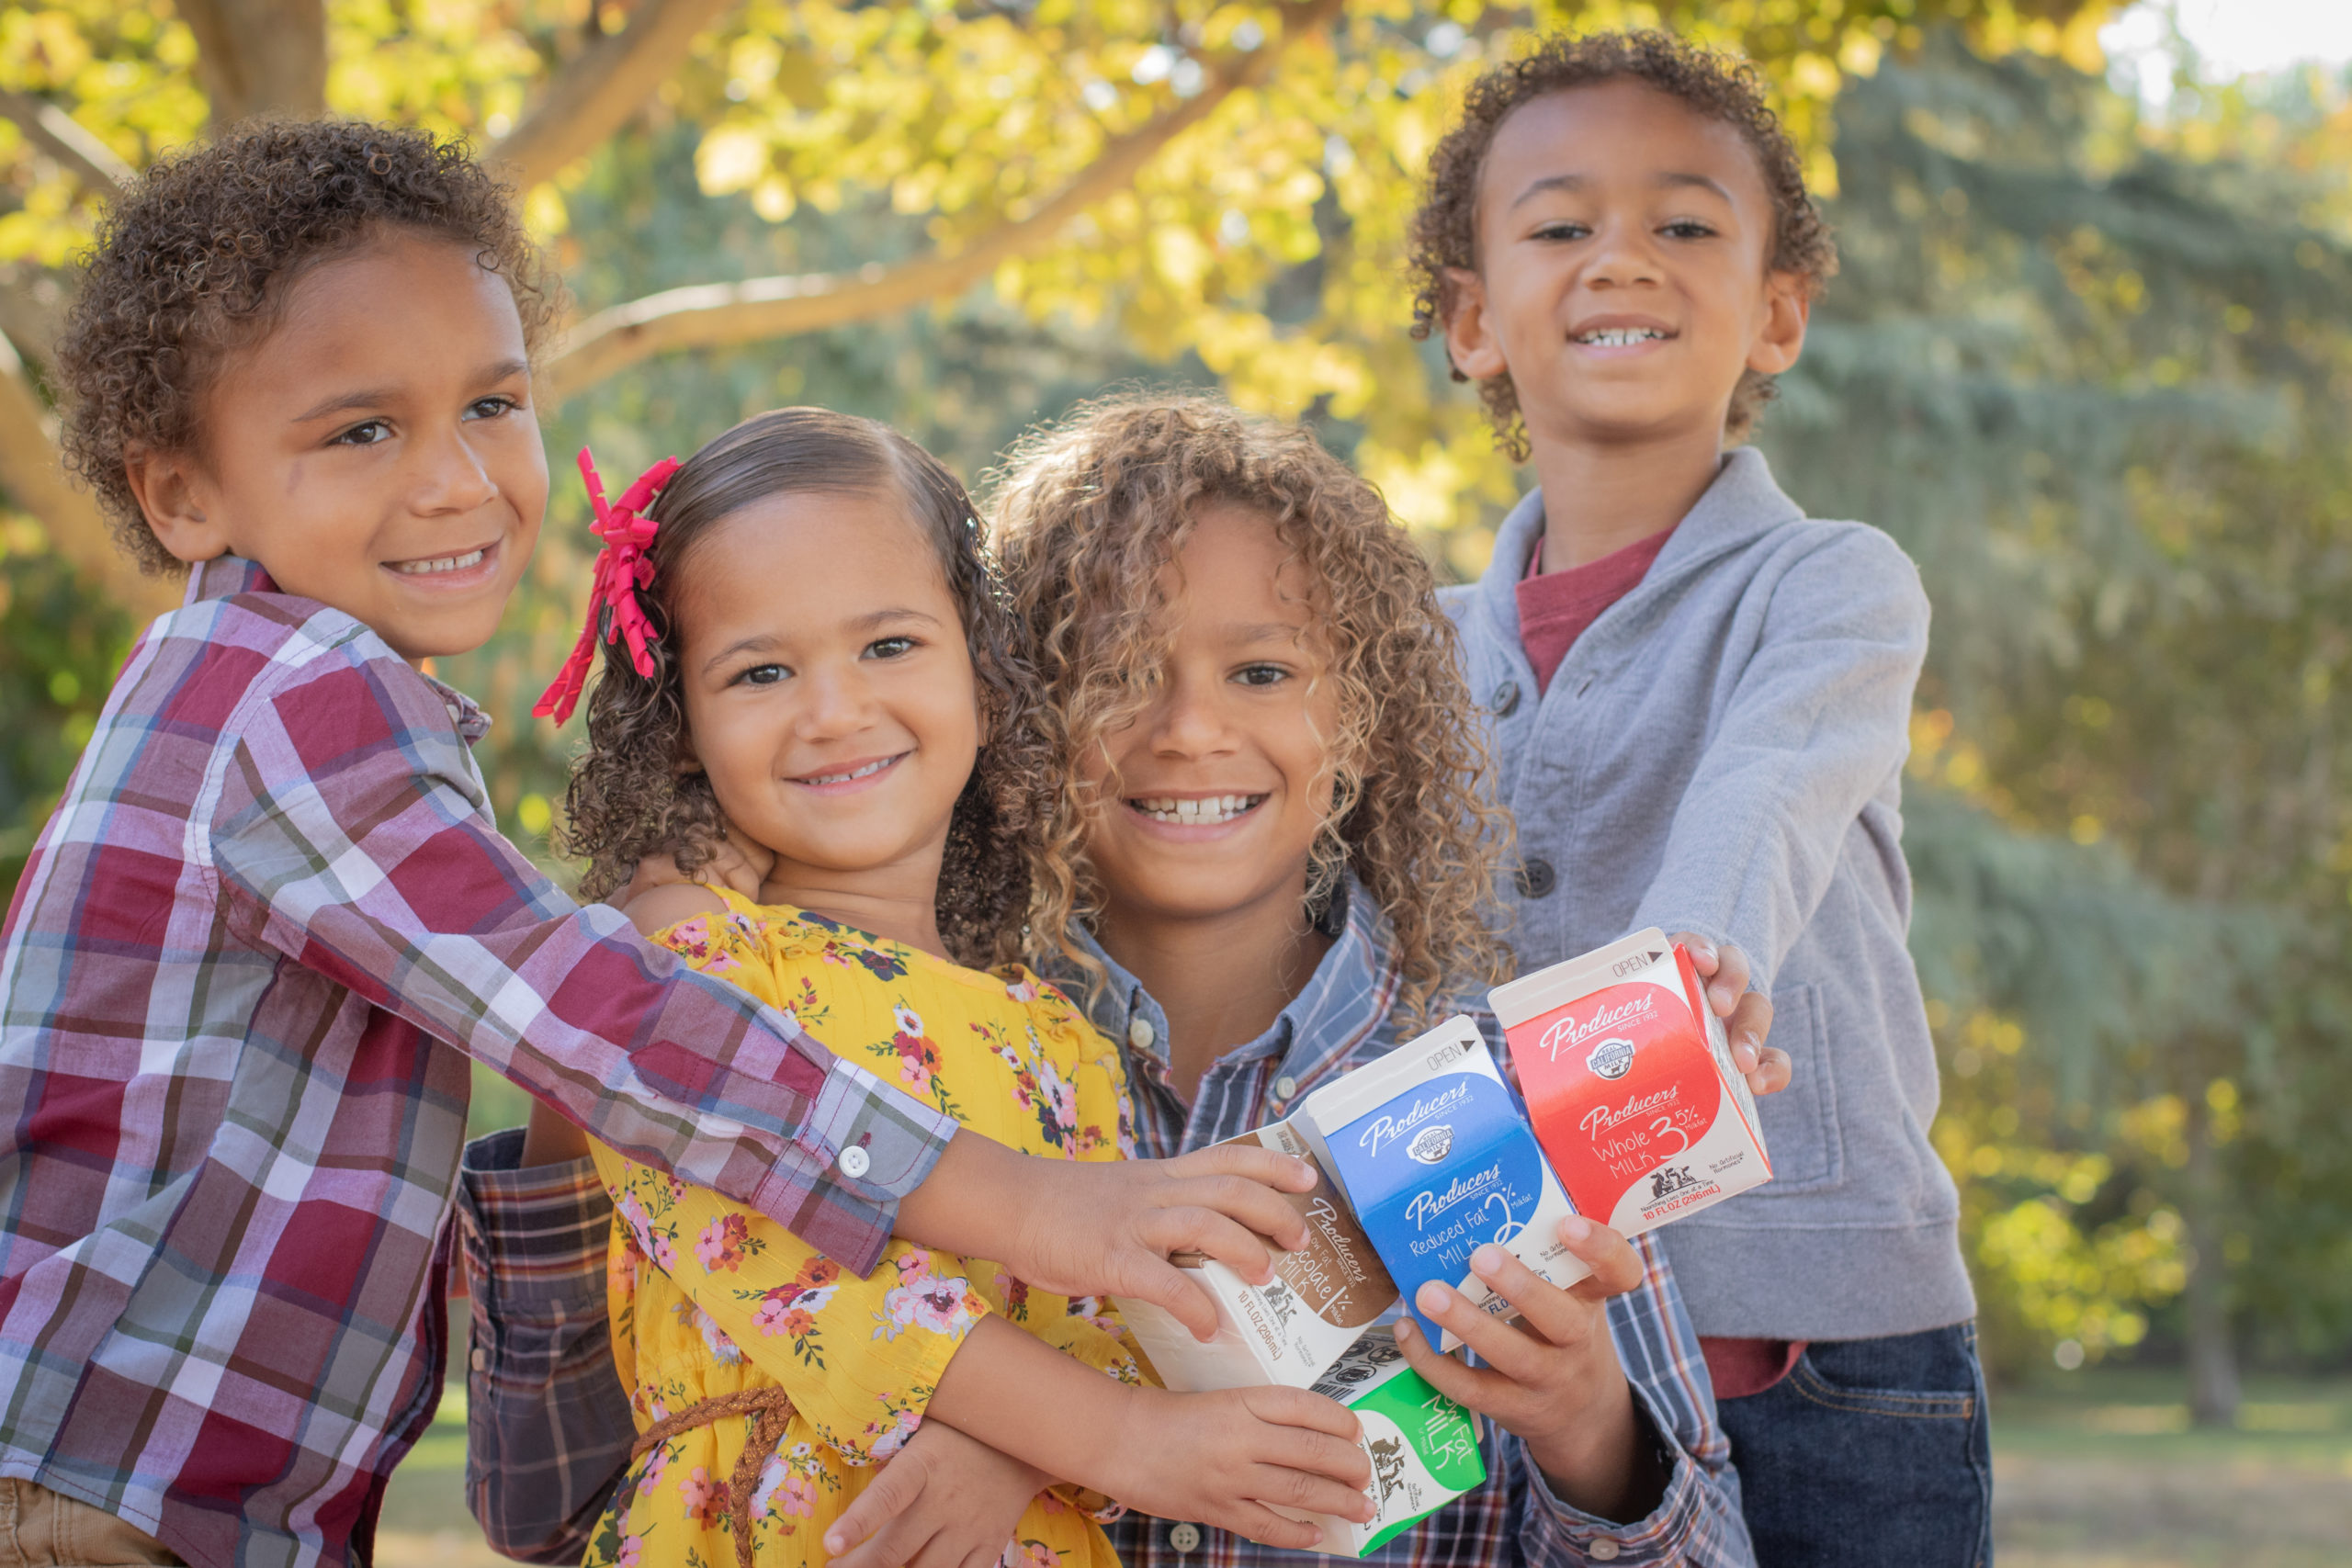 4 kids holding producers milk in the park.